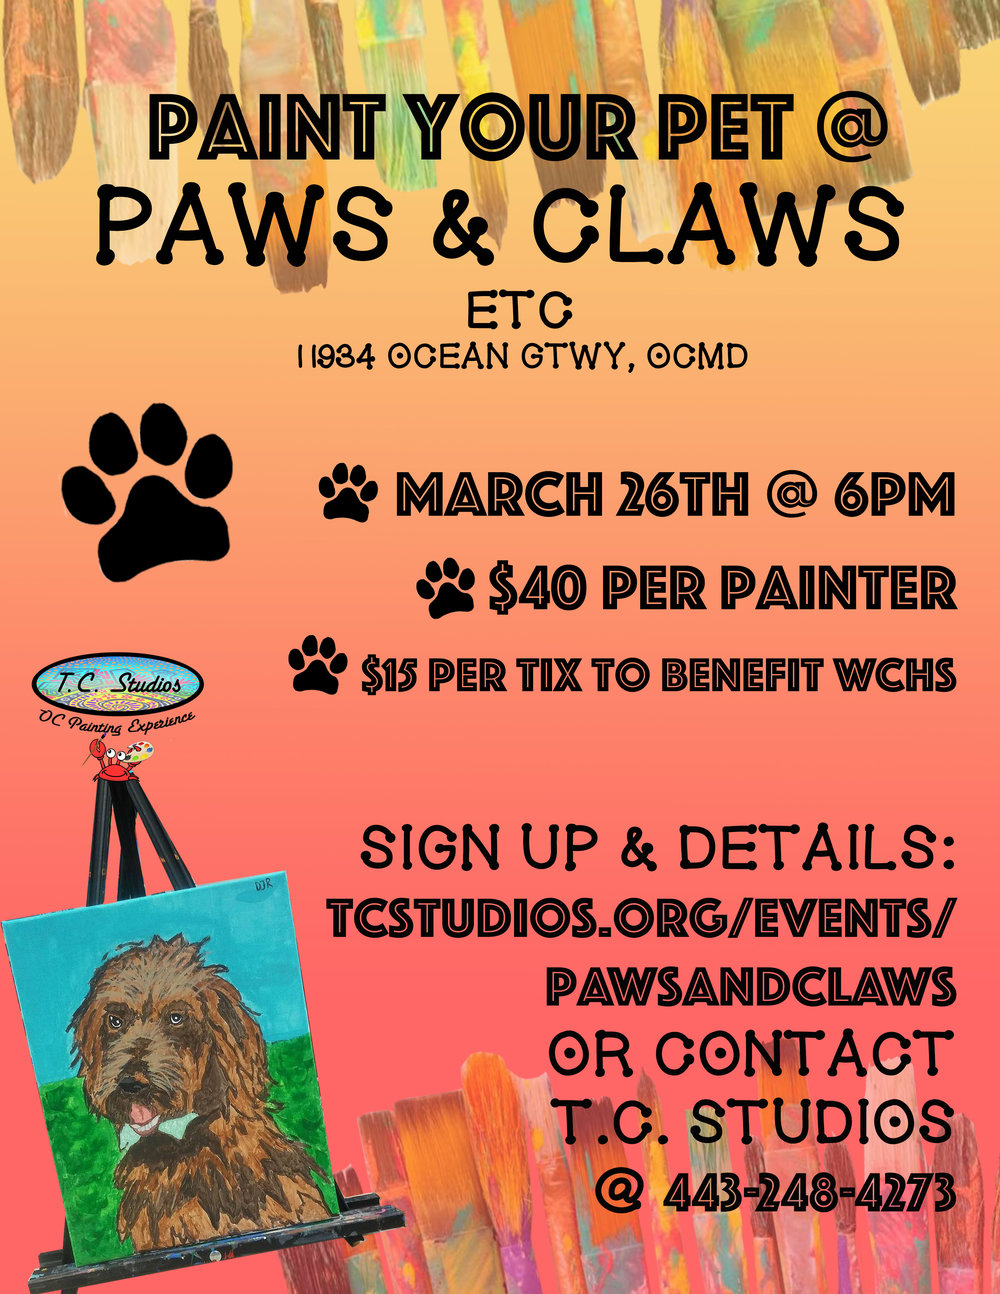 paws & claws flyer.jpg